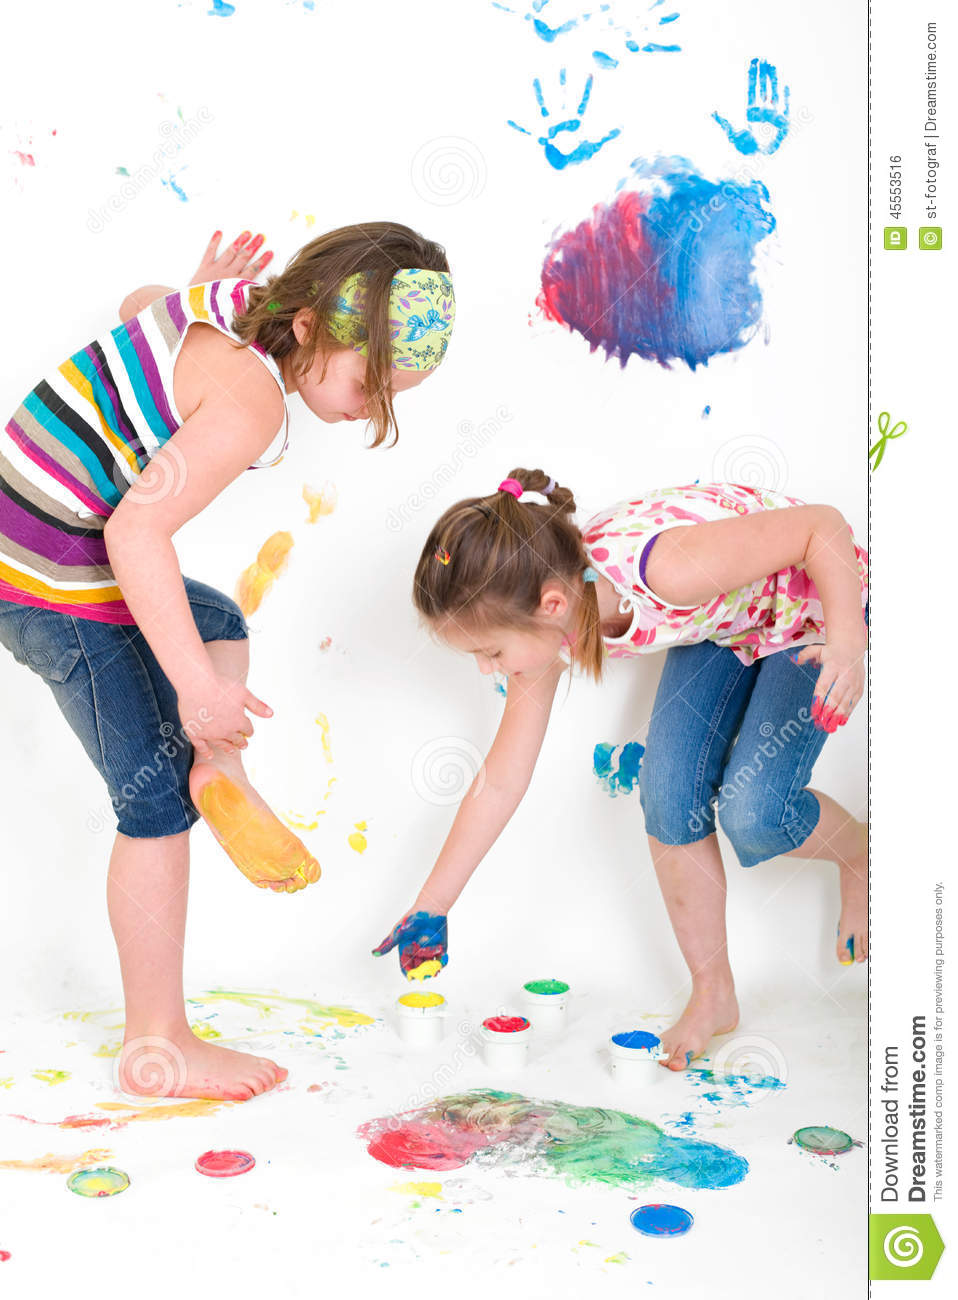 Kids While Painting Their Feet Stock Photo Image 45553516